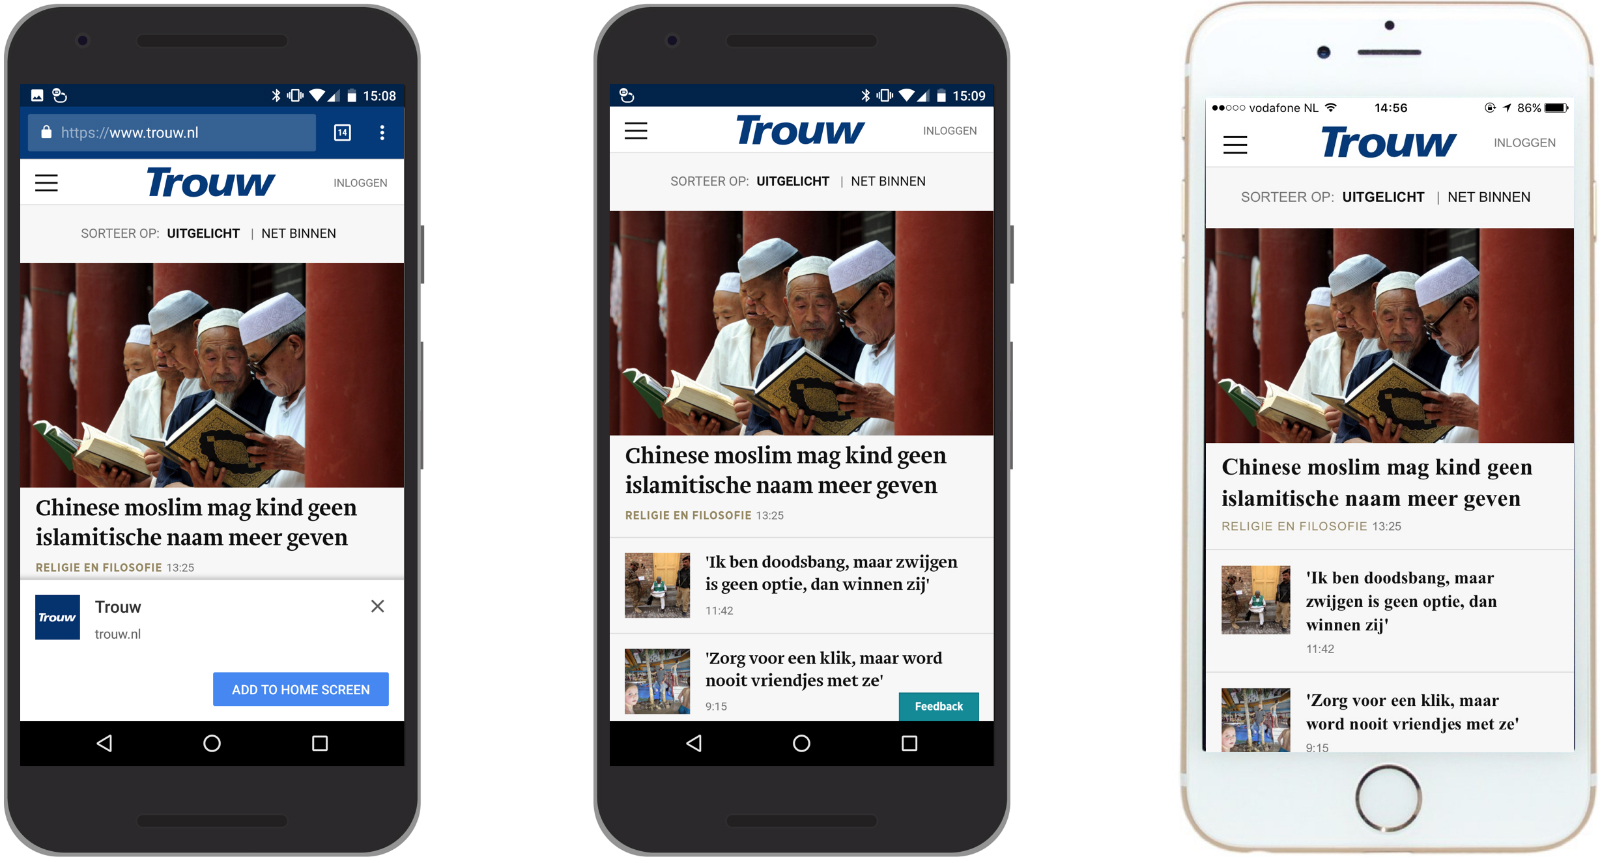 Trouw.nl as PWA in browser (left), as PWA published to Google Play Store (middle) and as PWA published to Apple's App Store (right).